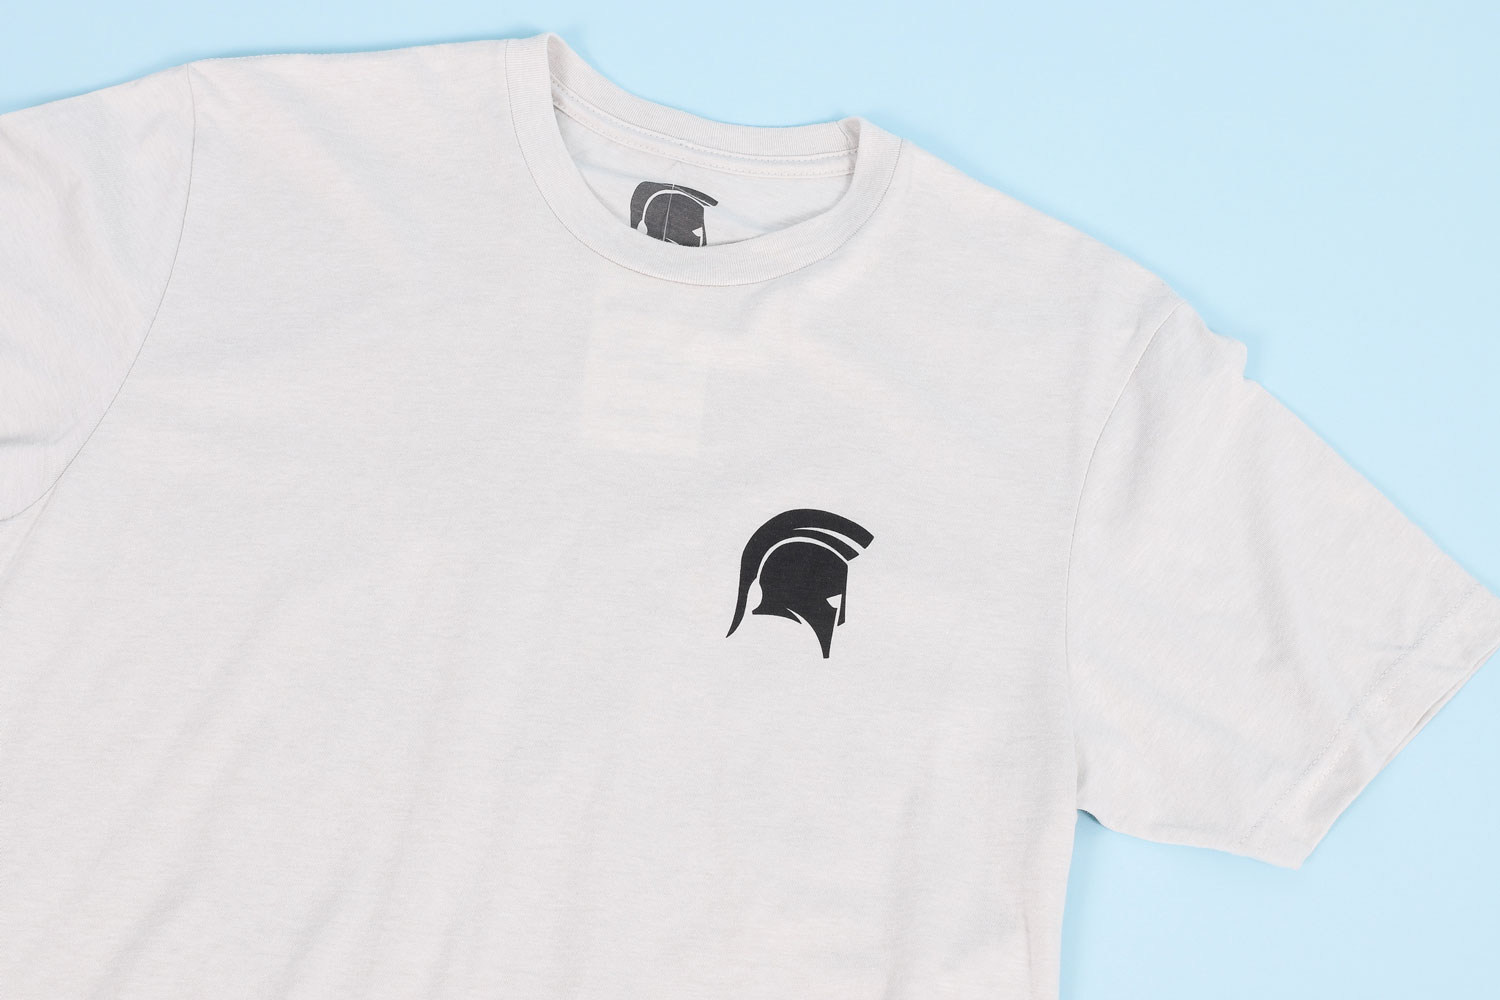 white t-shirt with small black spartan helmet logo on chest